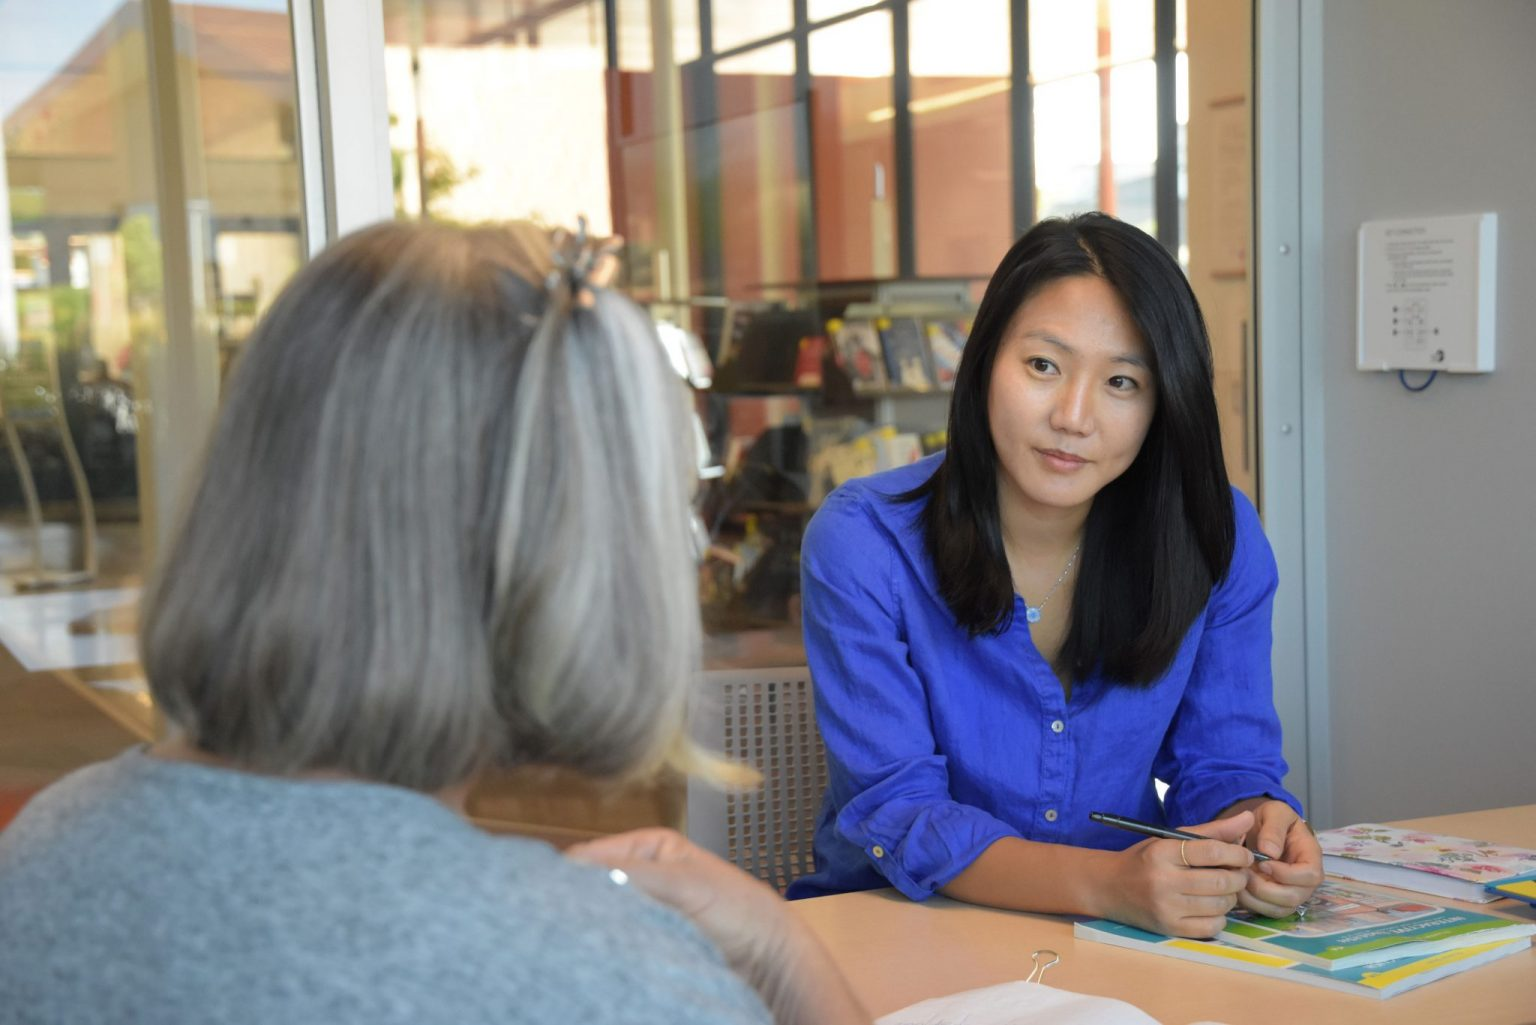 Adult literacy programs like ESL tutoring provide a pathway for adults in our community to develop their English literacy skills and thrive.